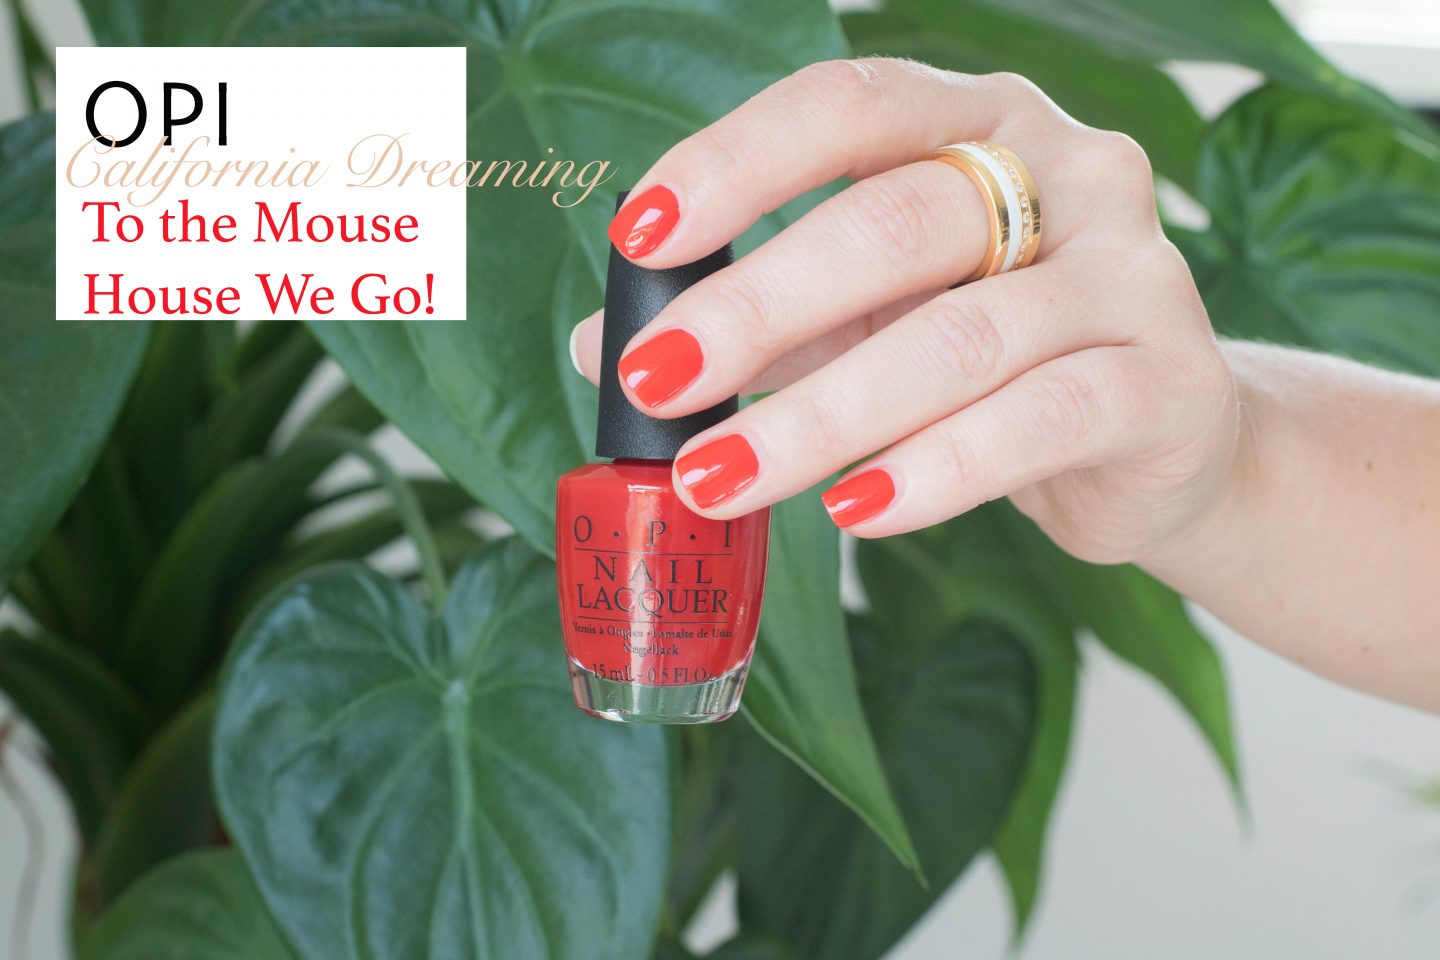 OPI California Dreaming To the Mouse House We Go!